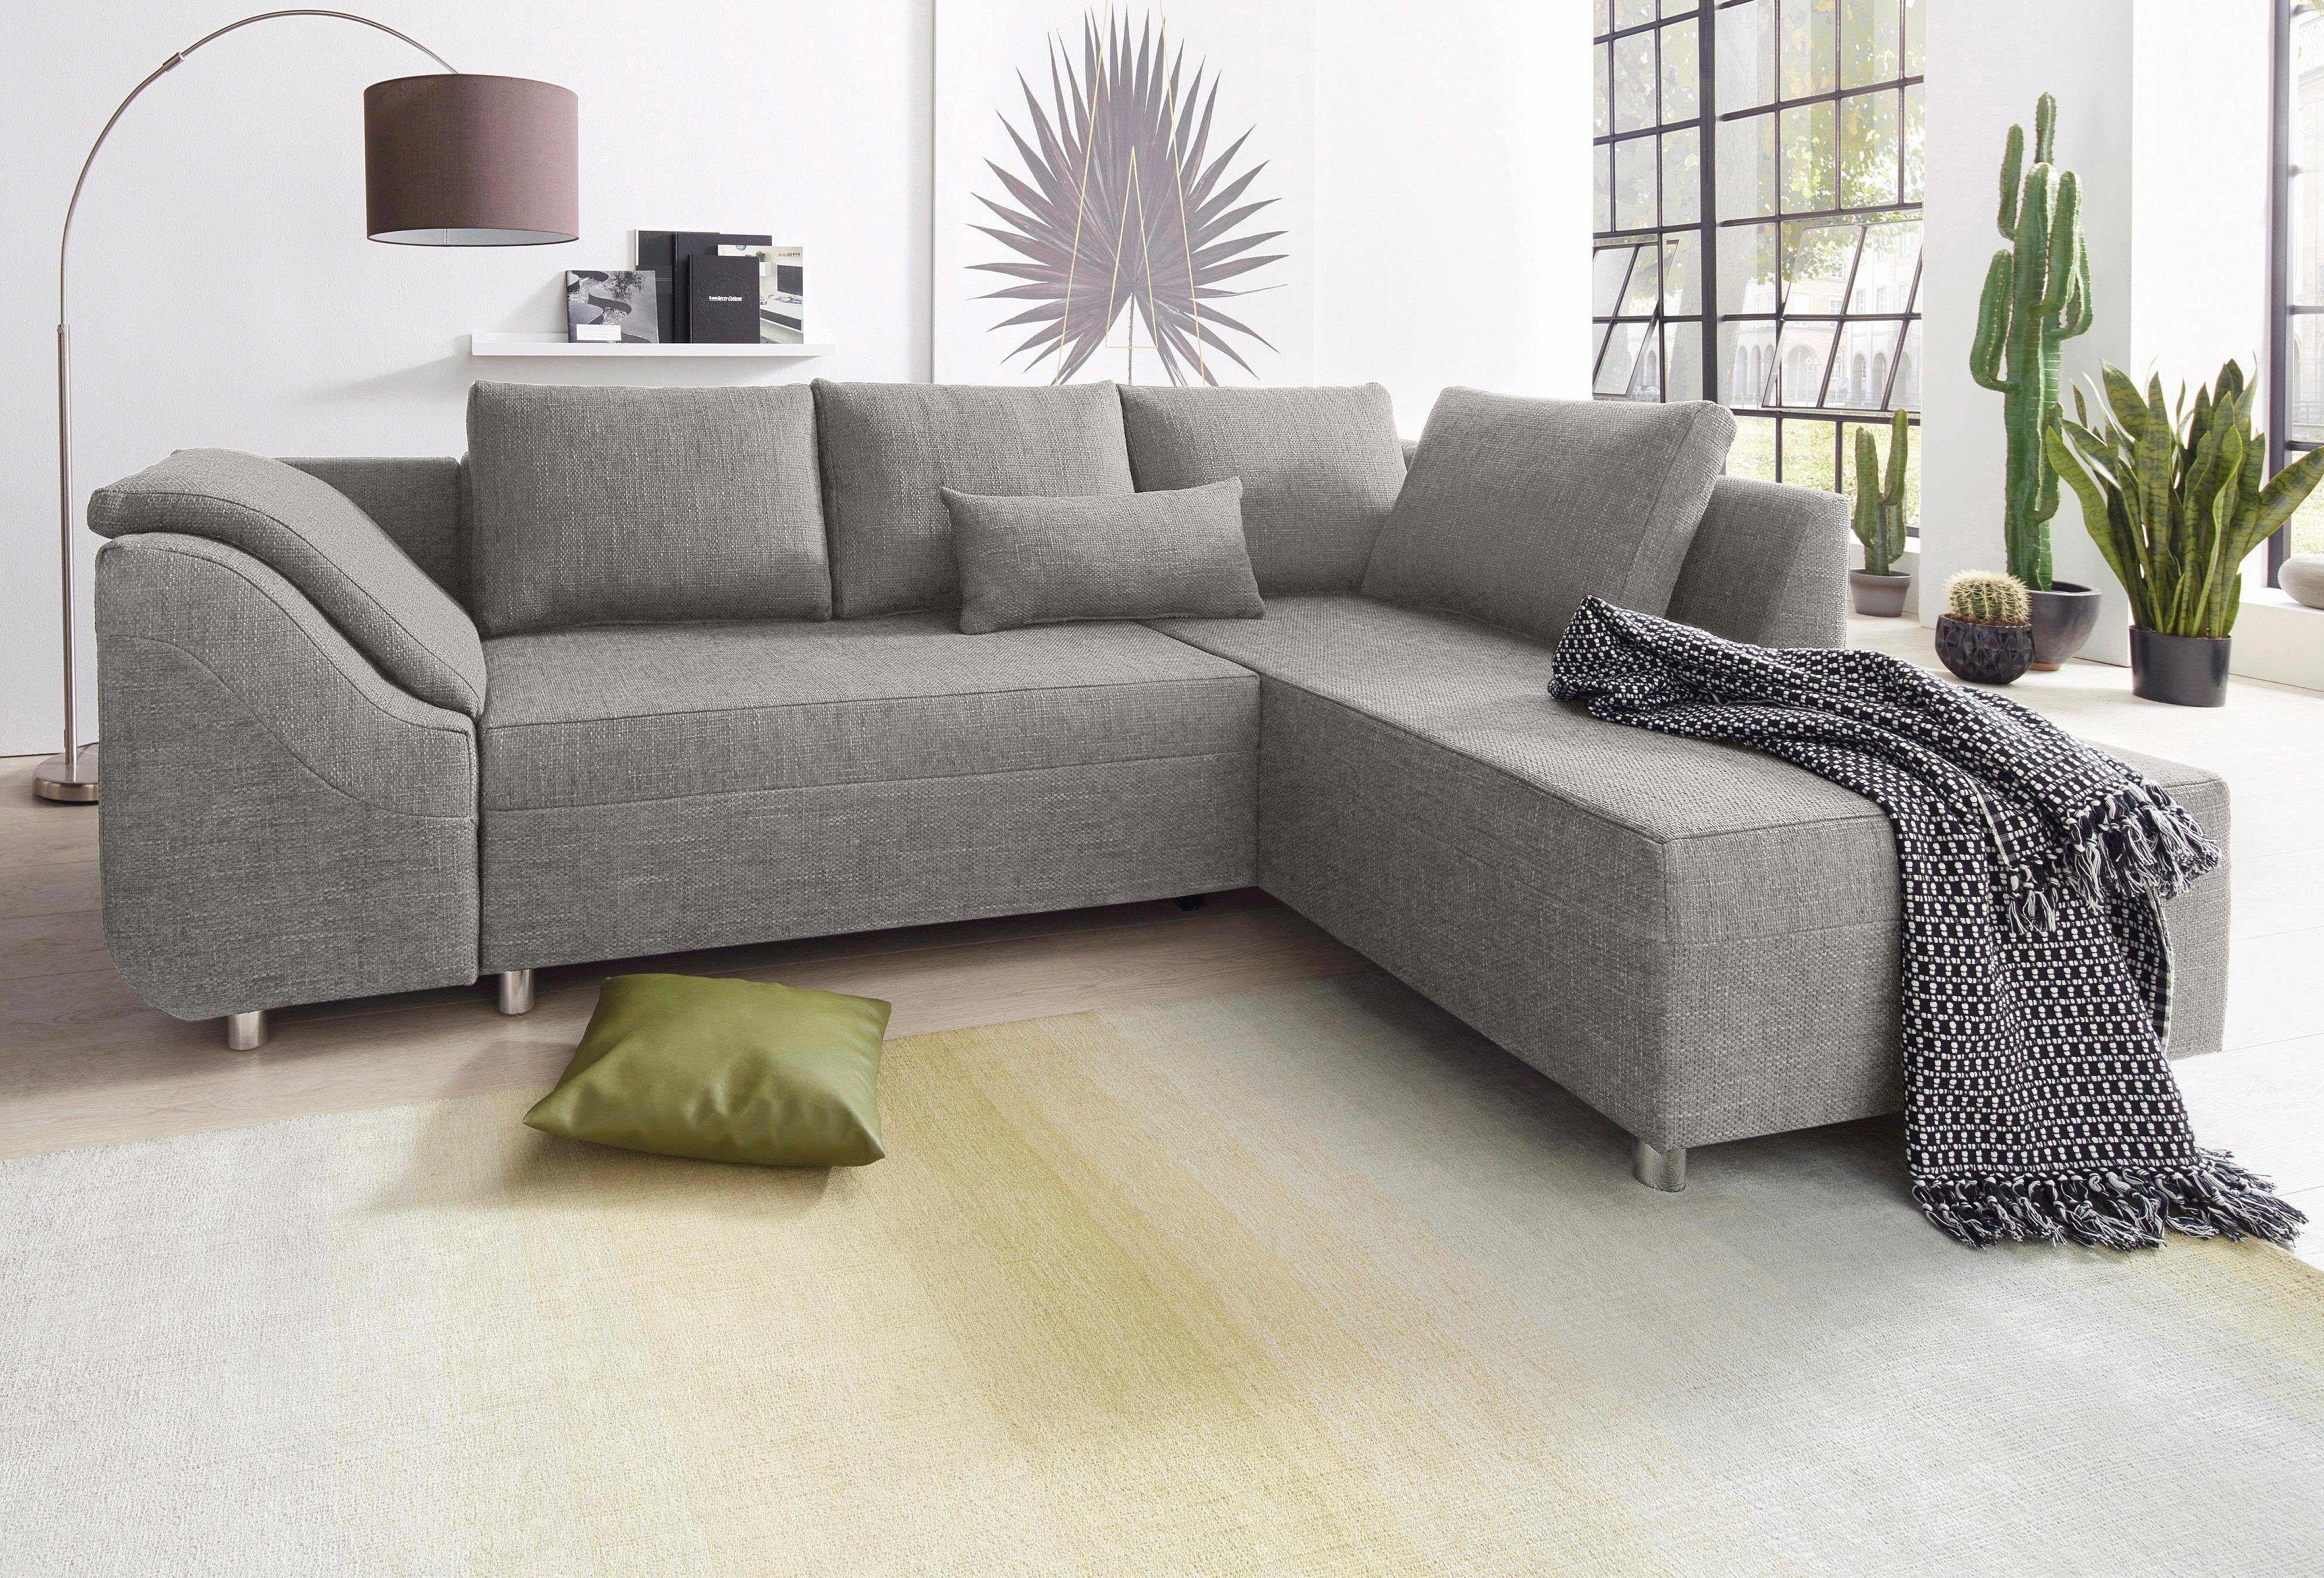 Cnouch Ecksofa Pin By Ladendirekt On Sofas Couches Sofa Couch Furniture